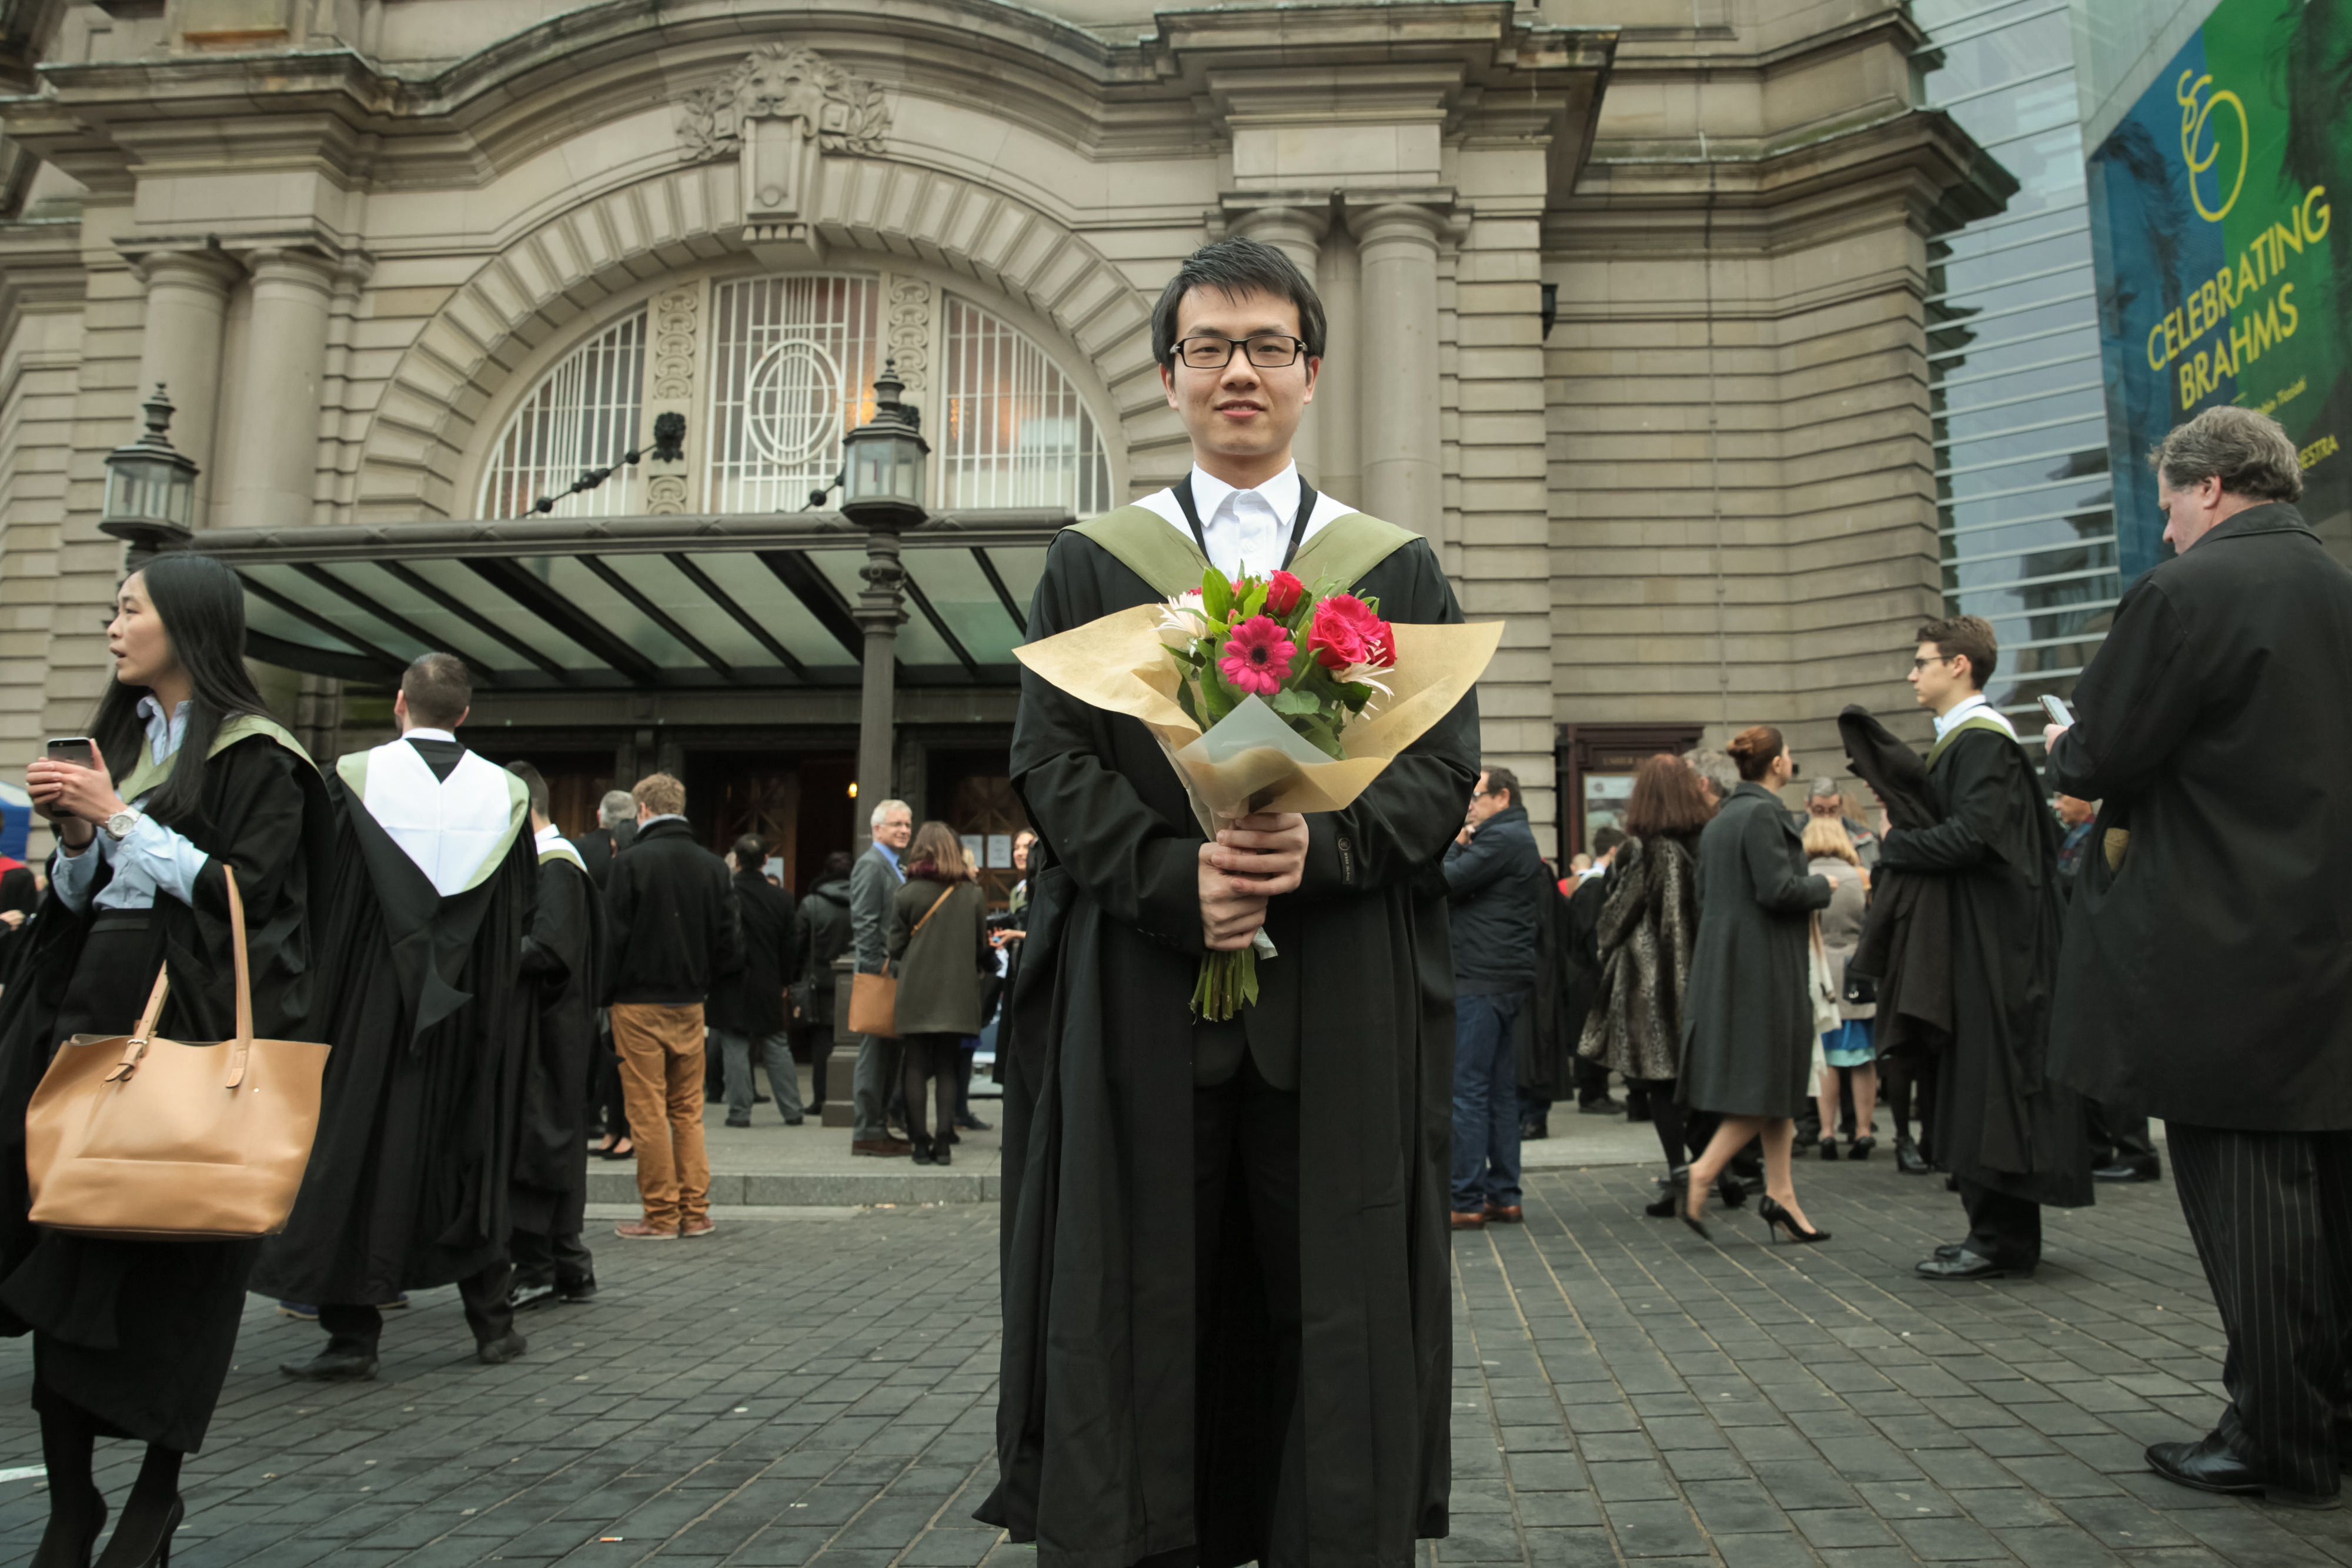 MSc in Information Systems Processes graduate Zhi Chen